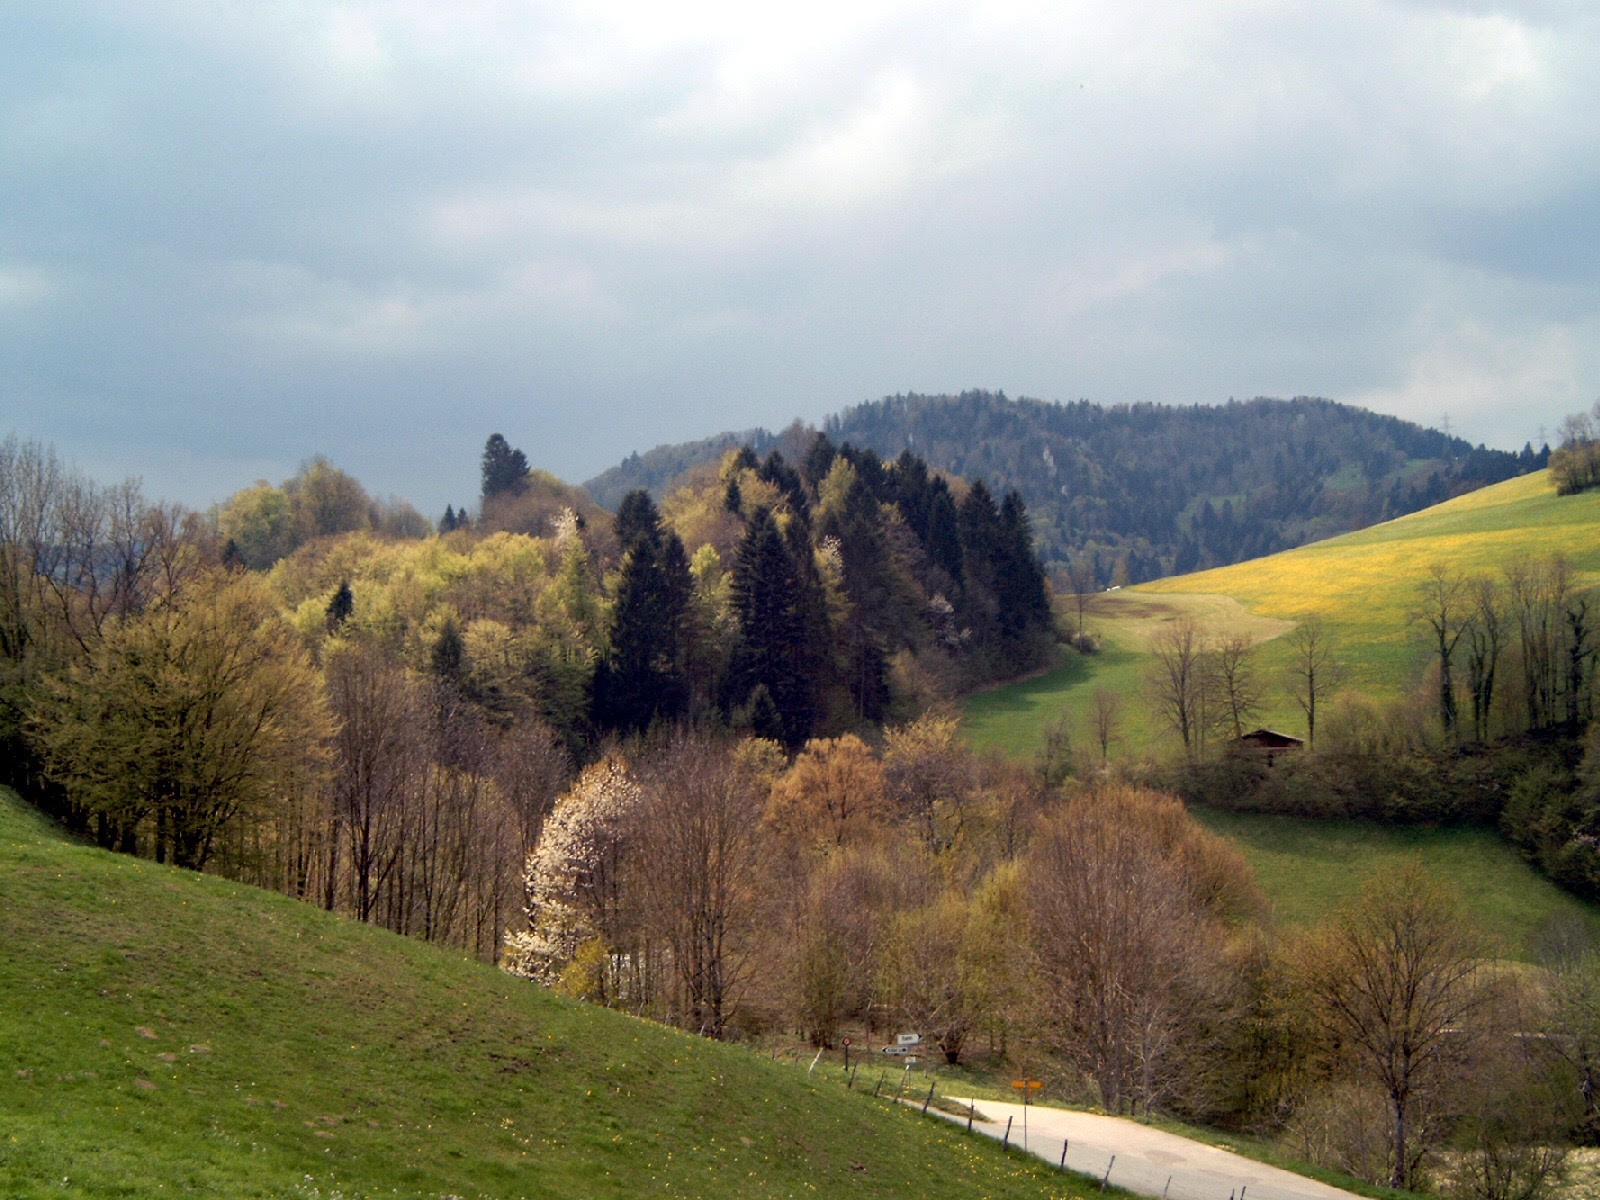 http://upload.wikimedia.org/wikipedia/commons/e/ef/Montmelon%2C_Jura_in_spring.JPG